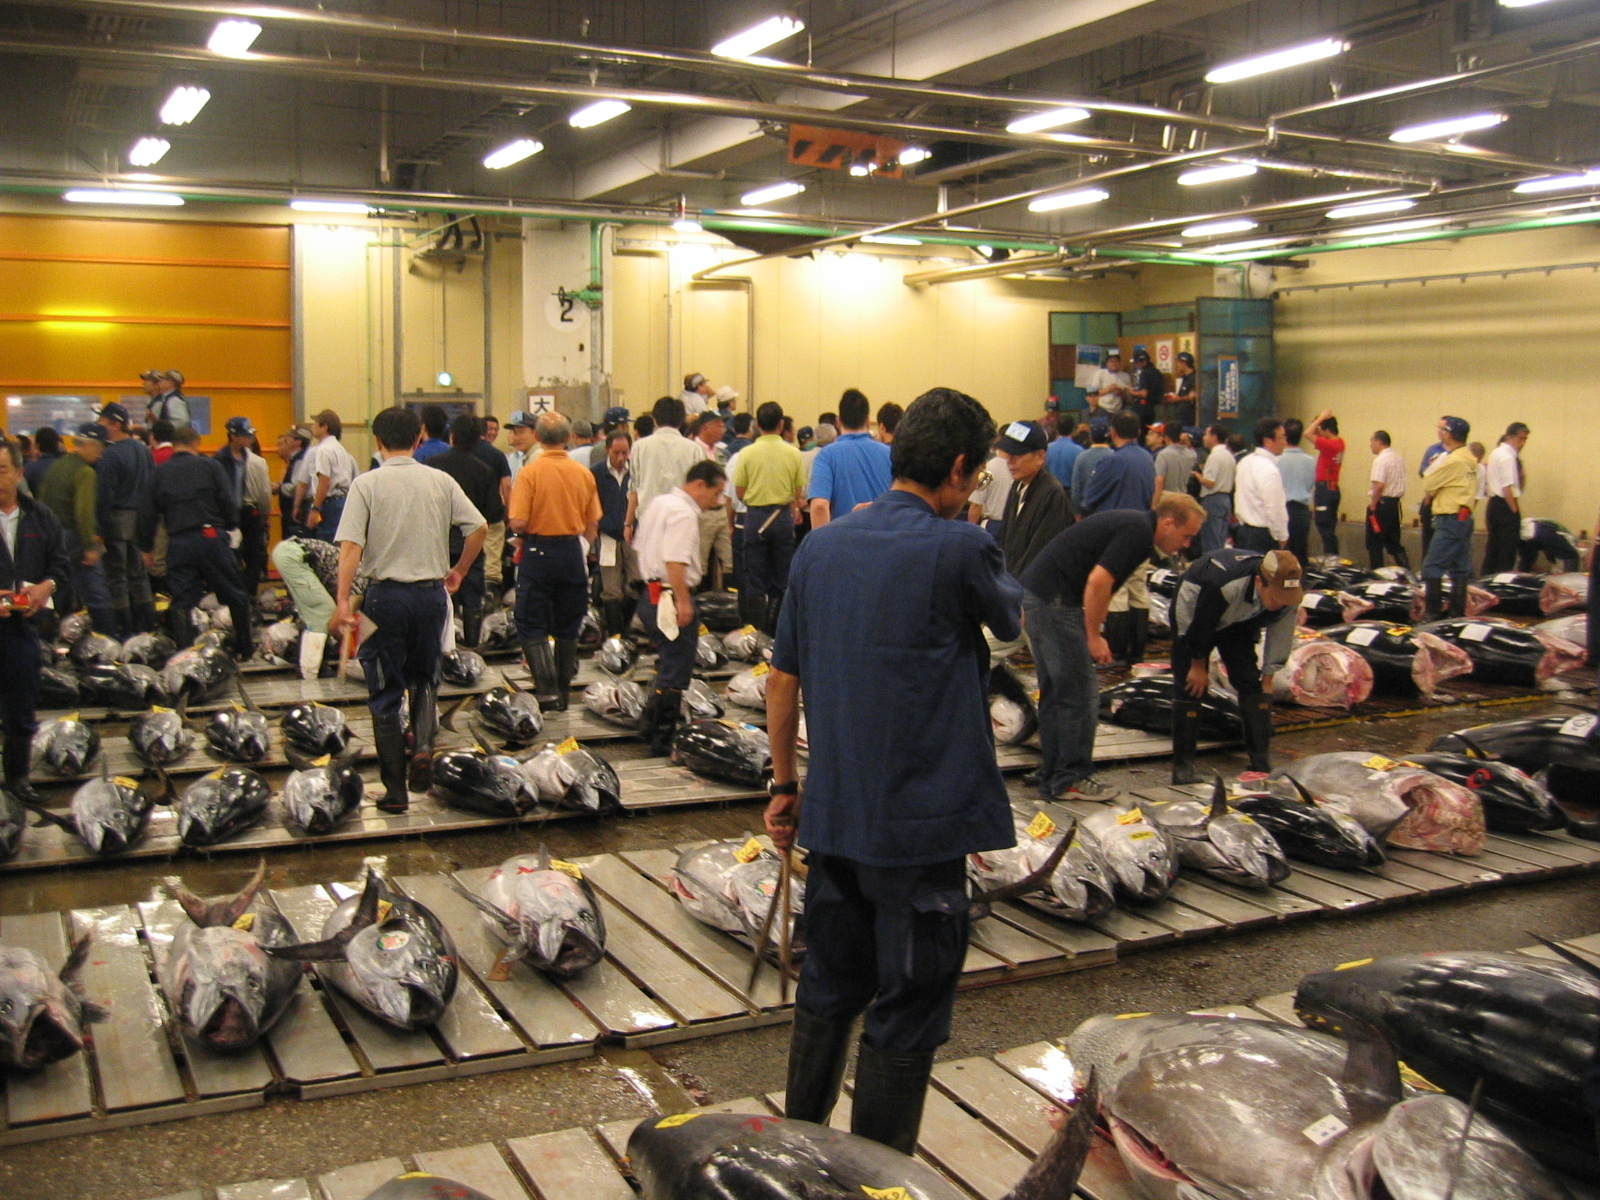 http://upload.wikimedia.org/wikipedia/commons/e/e0/Tsukiji_Fresh_Tuna_Auction.JPG